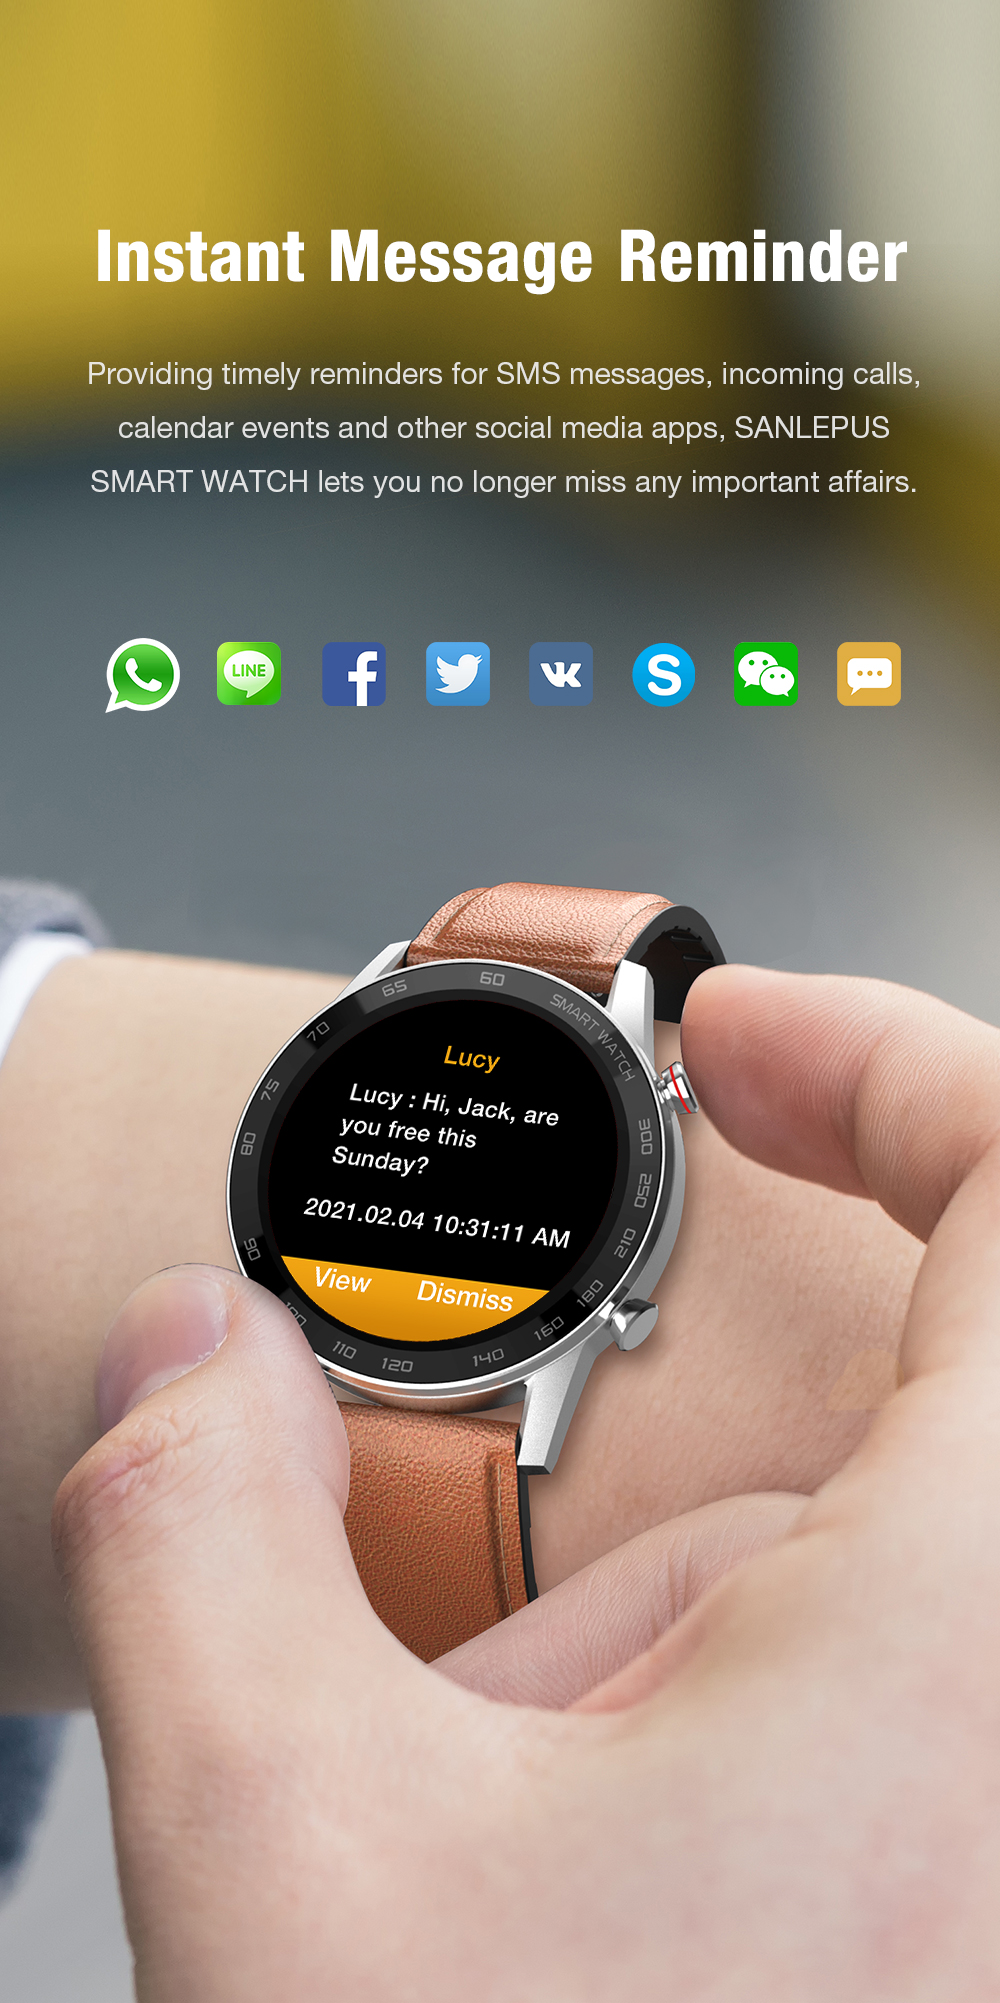 H0d5c46dd5ce4452ea9440a4014f08f2bQ 2021 SANLEPUS ECG Smart Watch Dial Call Smartwatch Men Sport Fitness Bracelet Clock Watches For Android Apple Xiaomi